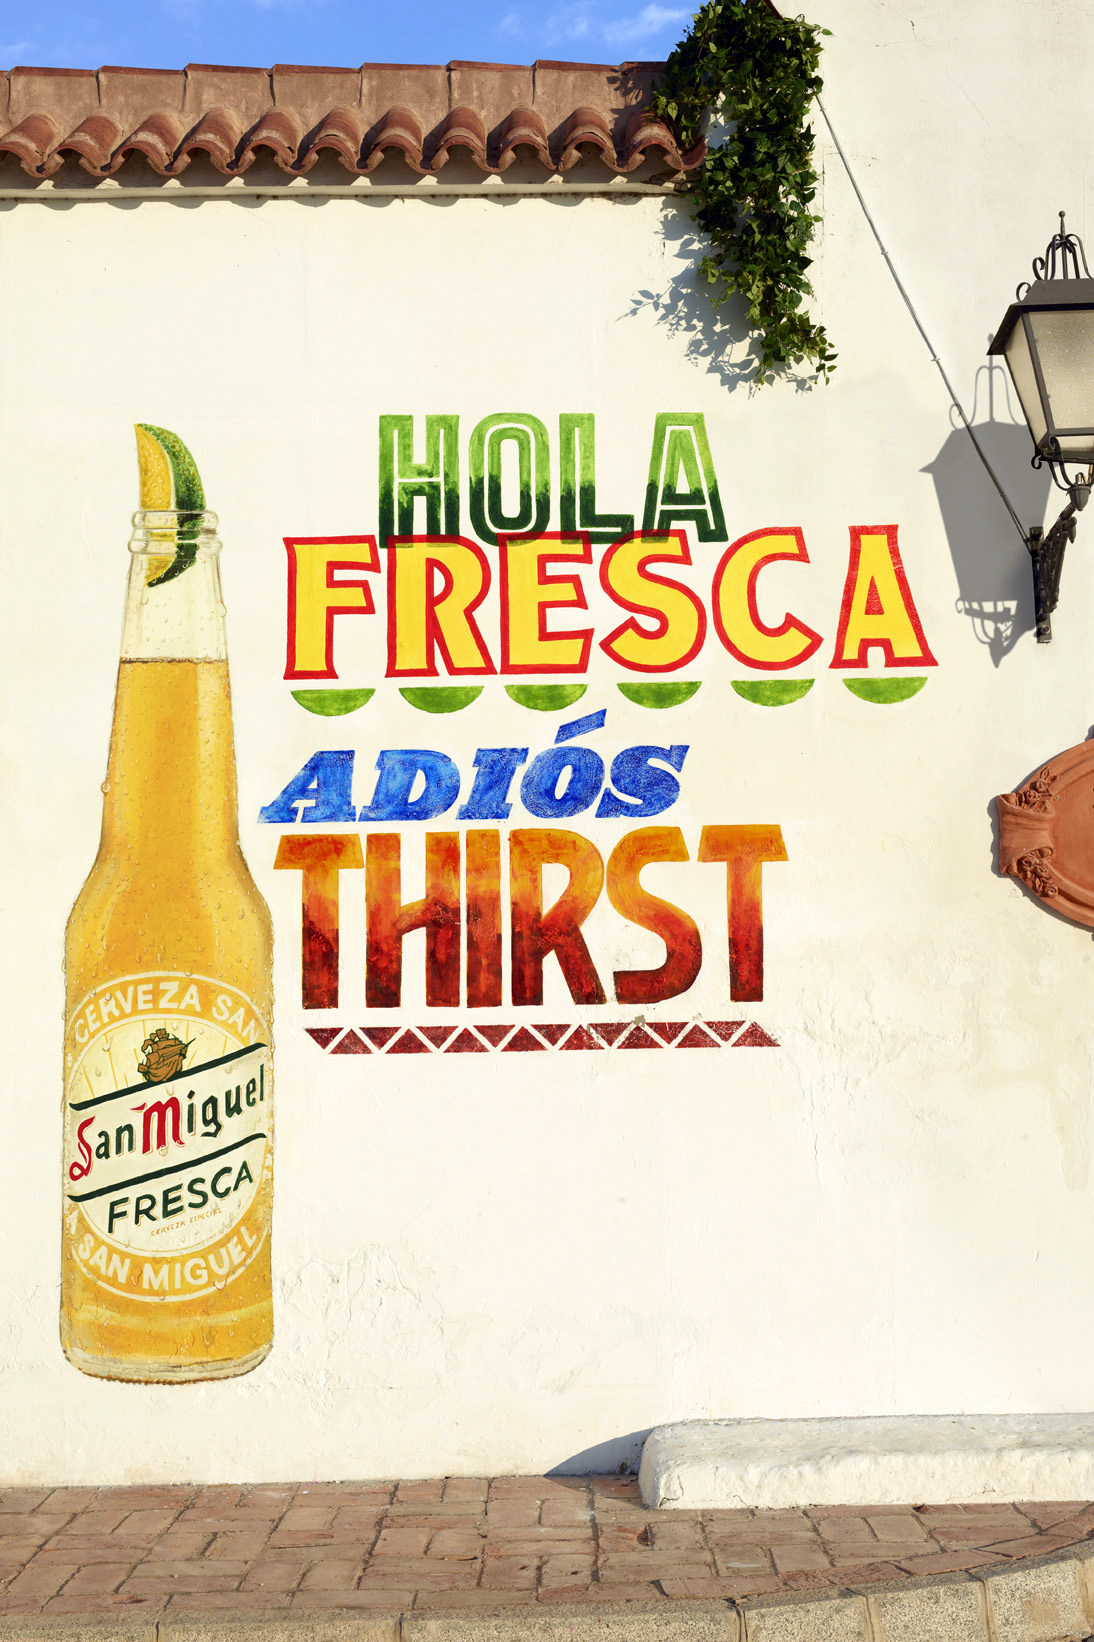 San Miguel Hola Fresca Mural Based On A Layout By Alan